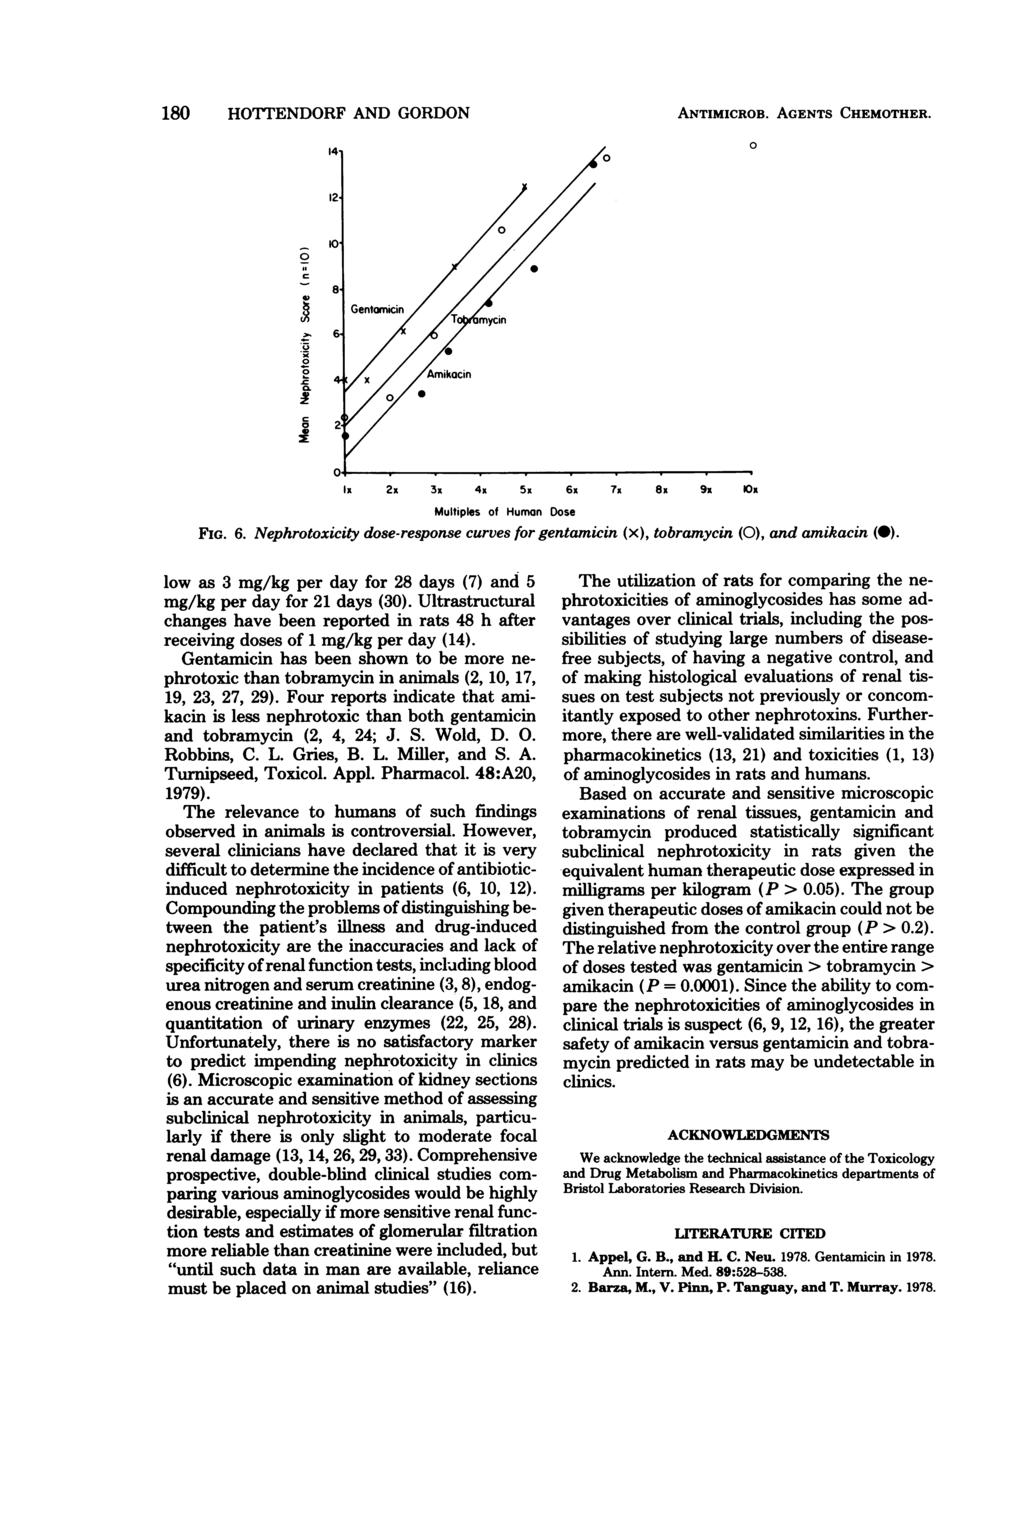 180 HOTTENDORF AND GORDON ANTIMICROB. AGENTS CHEMOTHER. 0 0.x 2 0 -' c lx 2x 3x 4x 5x 6x 7x 8x 9x Ox Multiples of Human Dose FIG. 6. Nephrotoxicity dose-response curves for gentamicin (x), tobramycin (0), and amikacin (-).